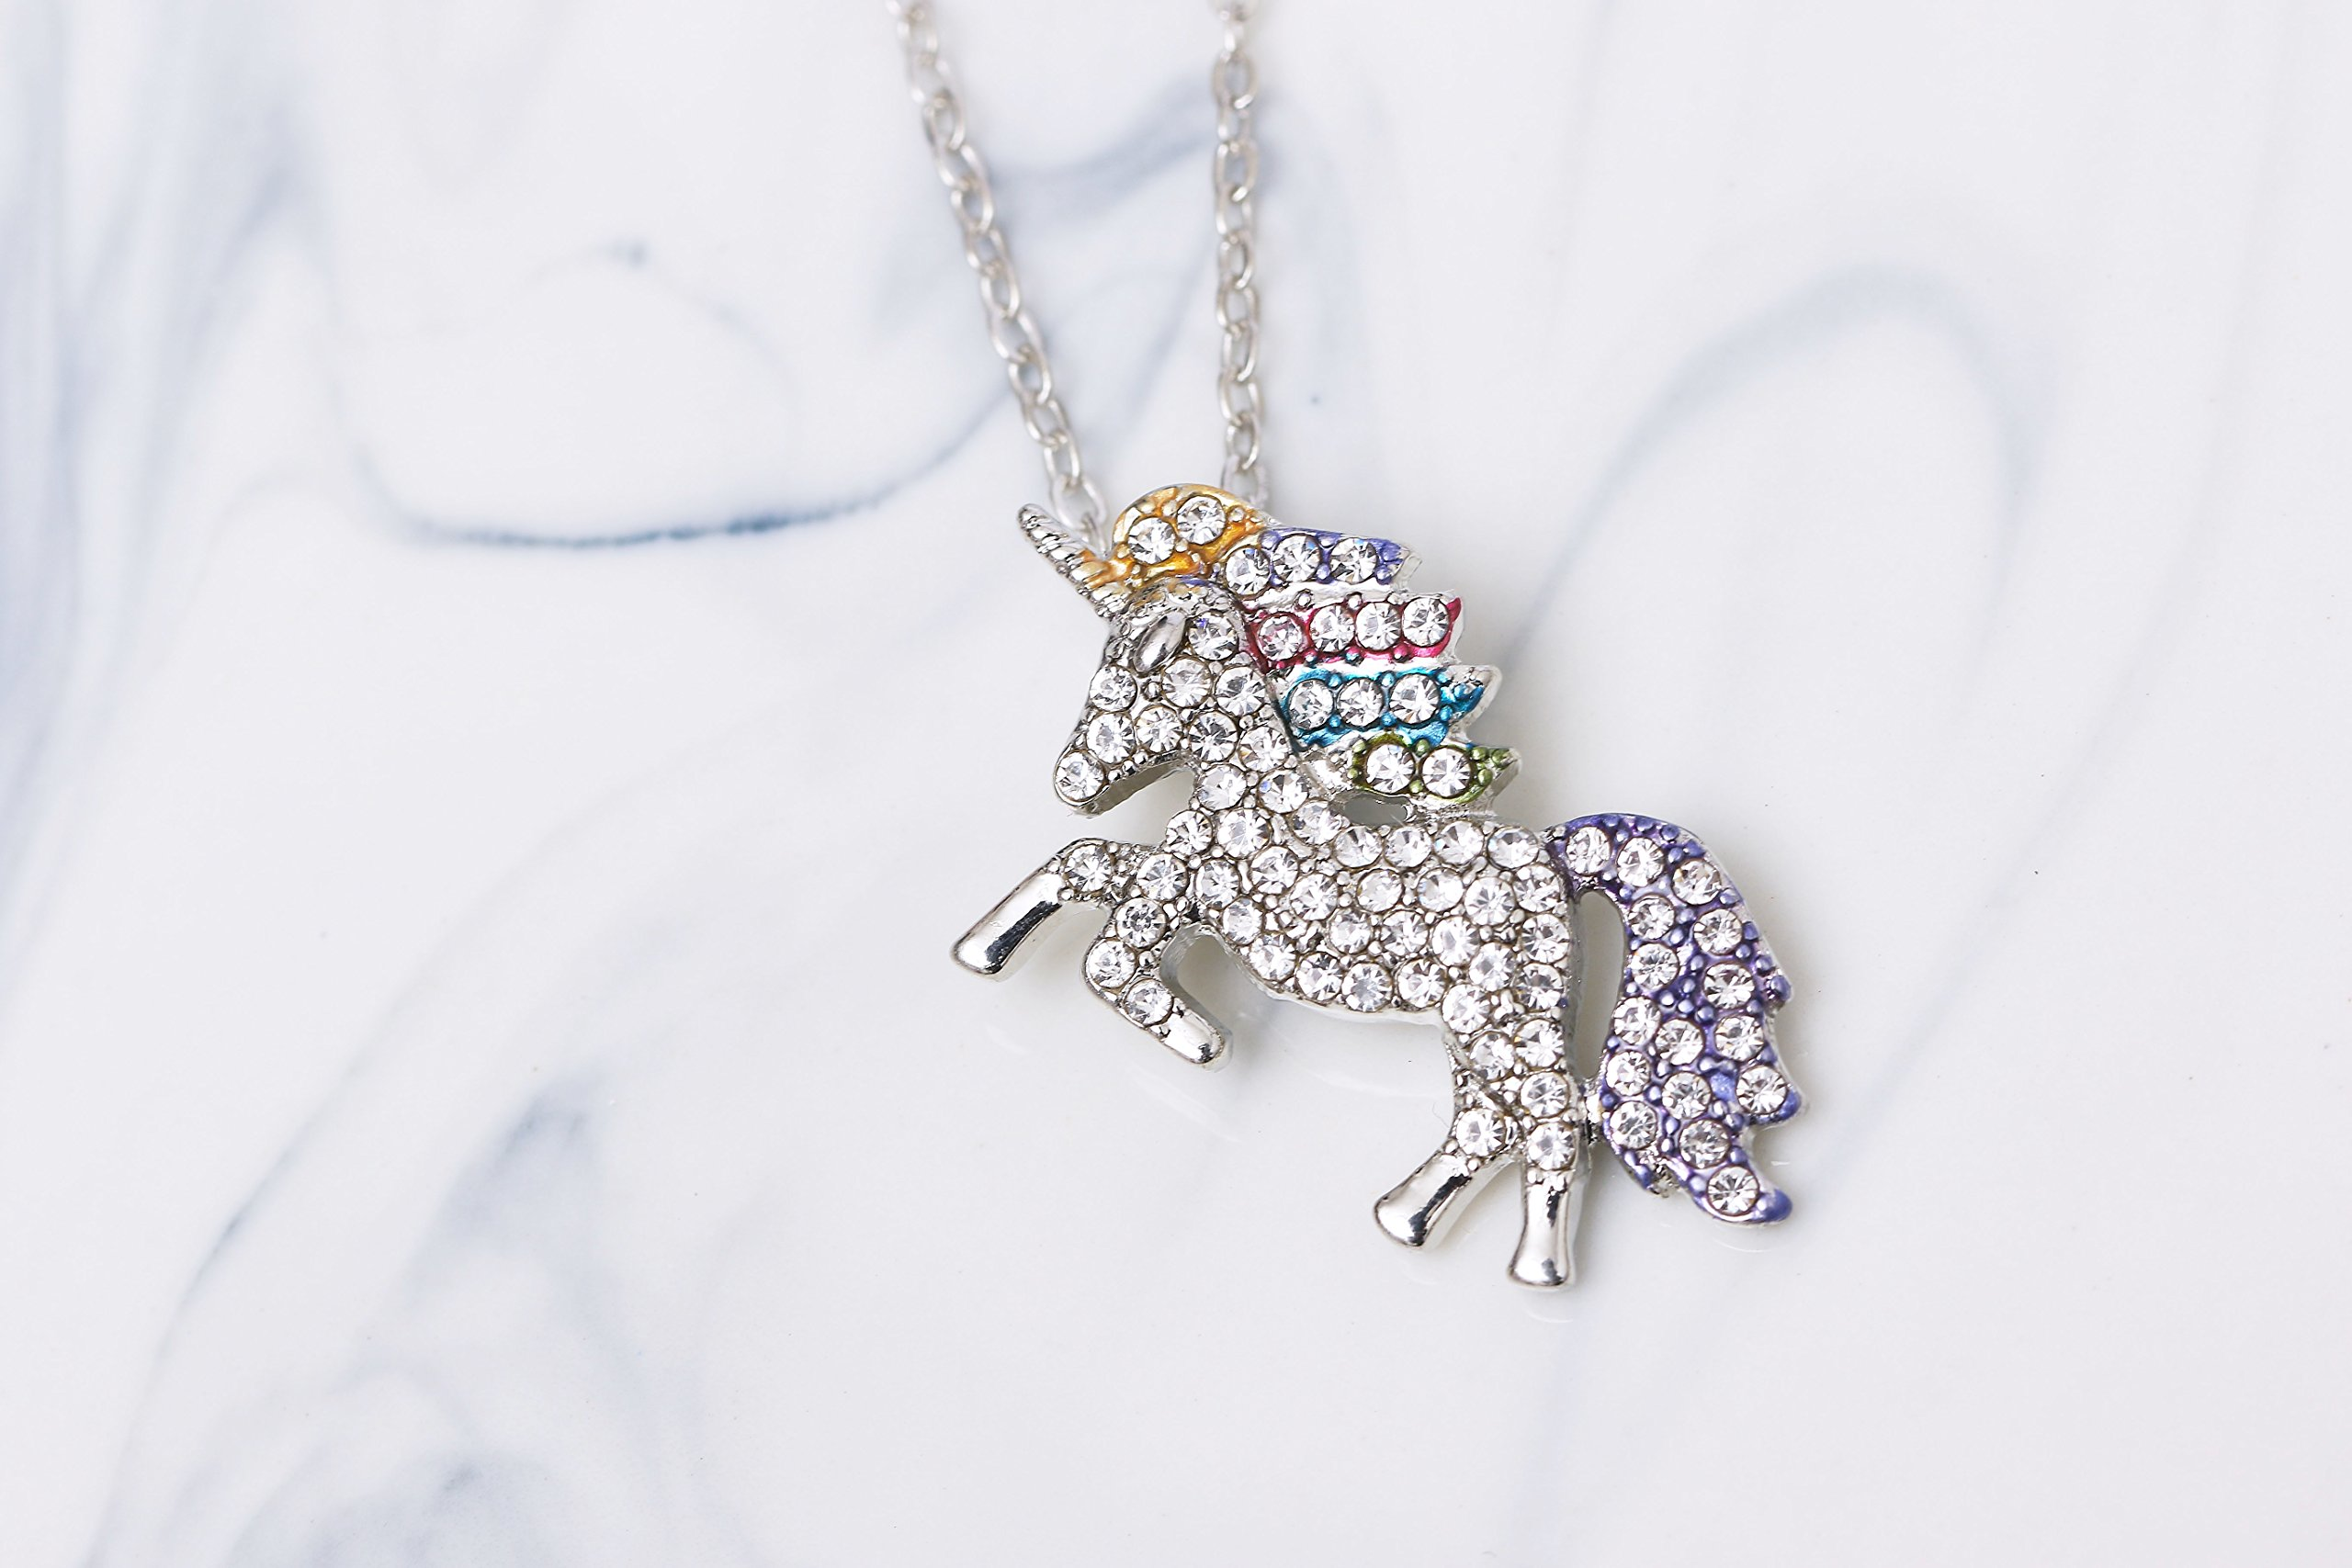 MUHU Fashion Rainbow Rhinestones Unicorn Pendant Necklace 5